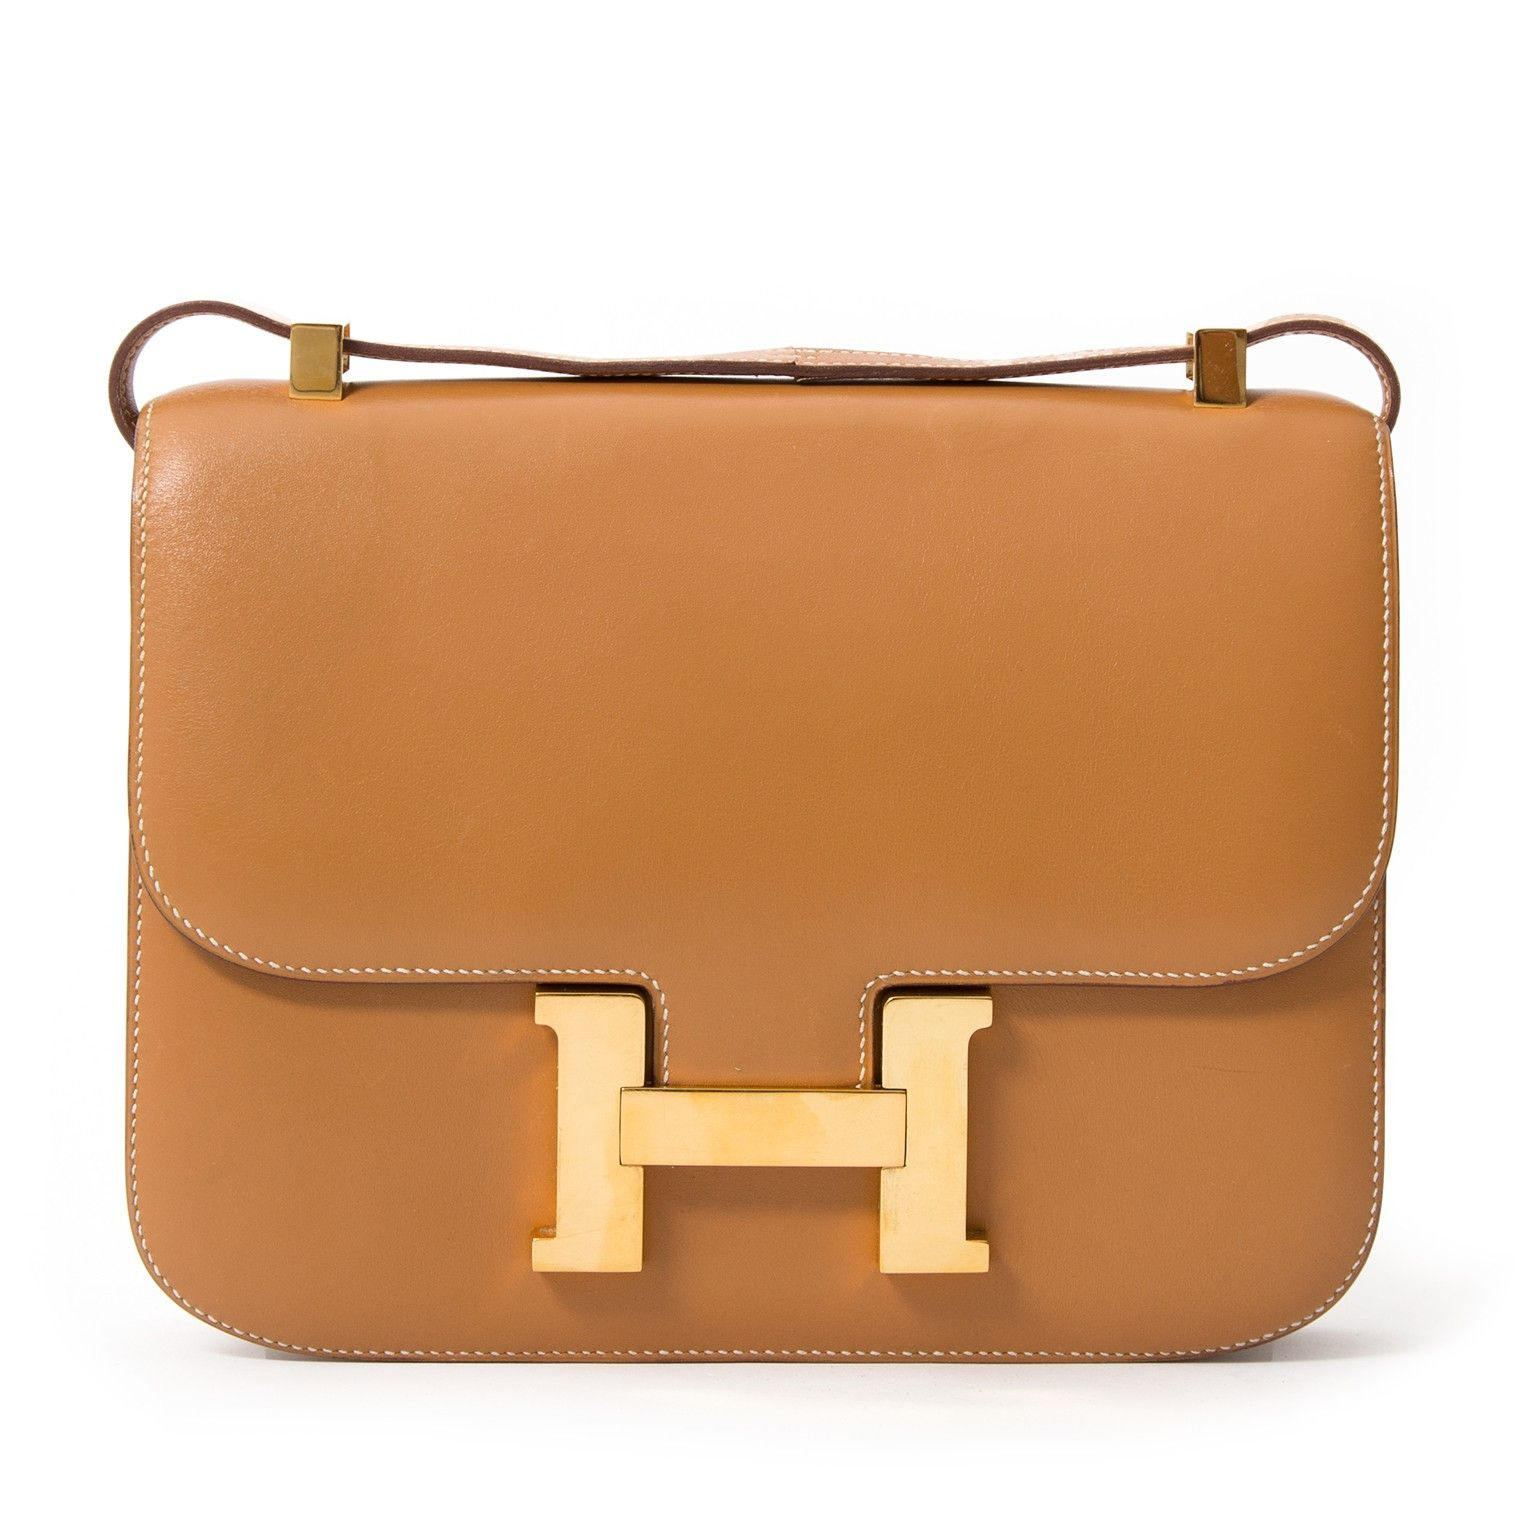 5e028b774 Hermes Gold Constance bag with gold hardware | Bags | Hermes, Bags ...